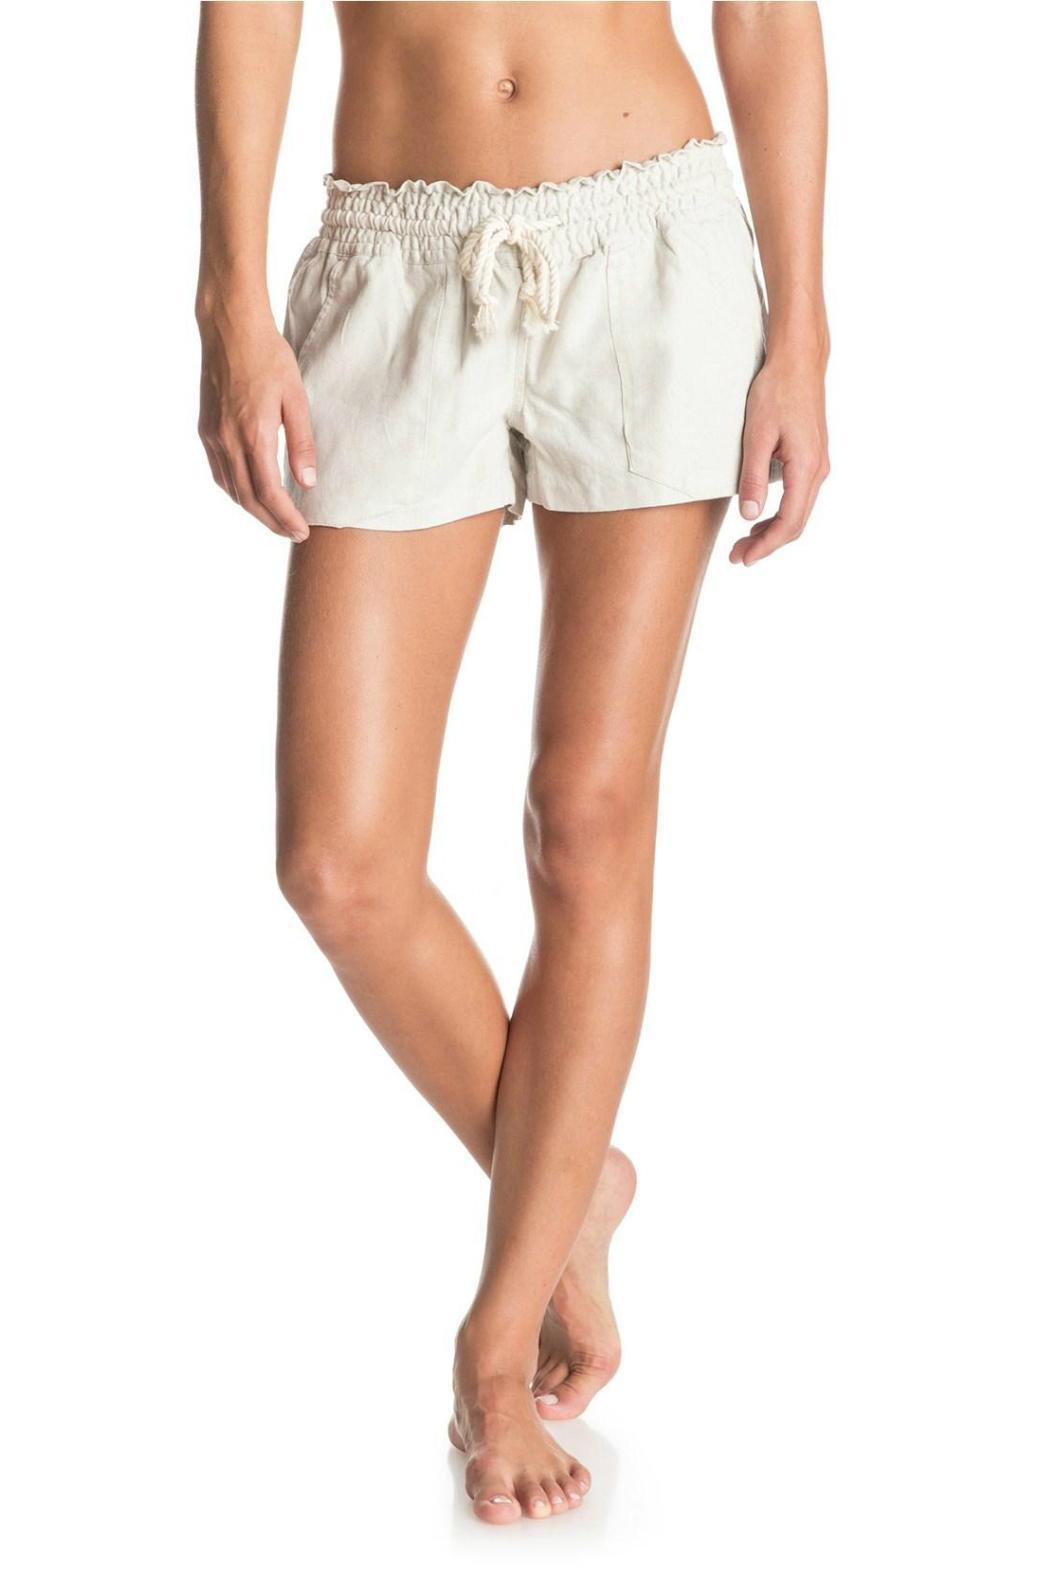 85f5c9806a Roxy Oceanside Beach Short from Minnesota by Big Island Swim & Surf ...